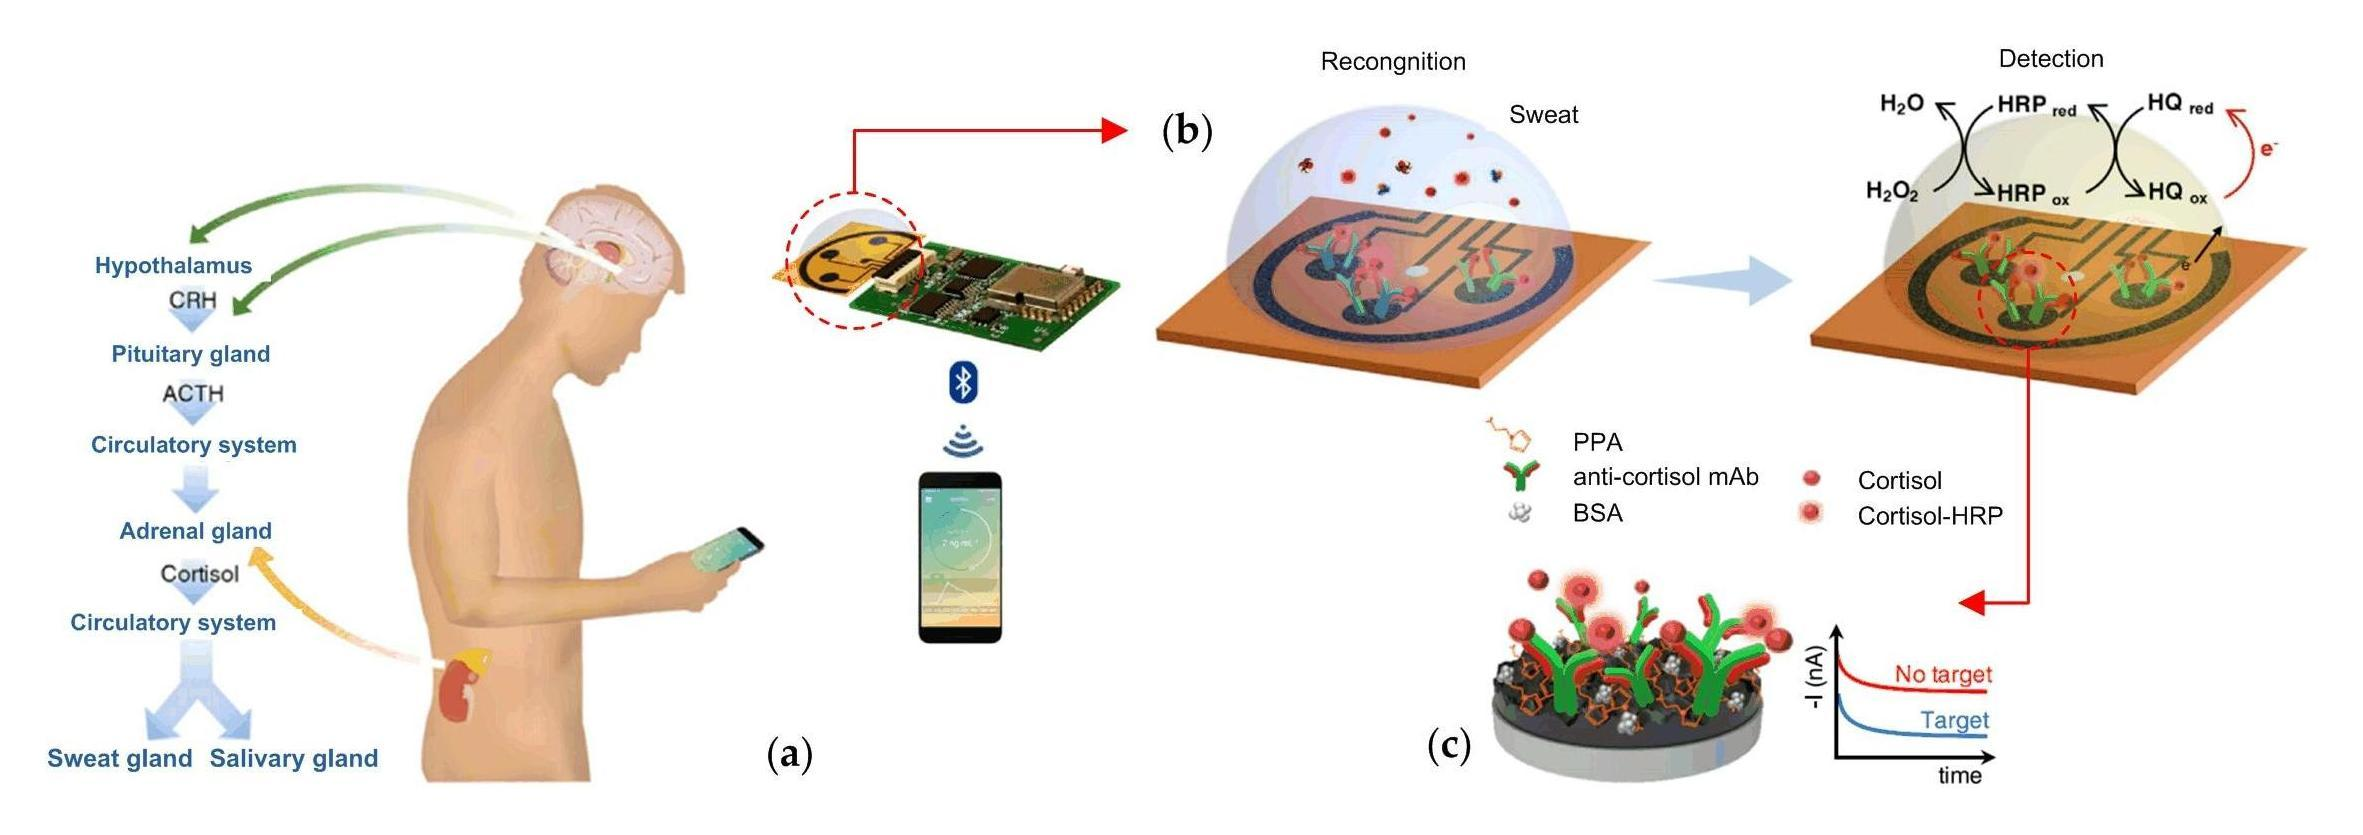 Graphene-based wireless remote control of you through your cell phone